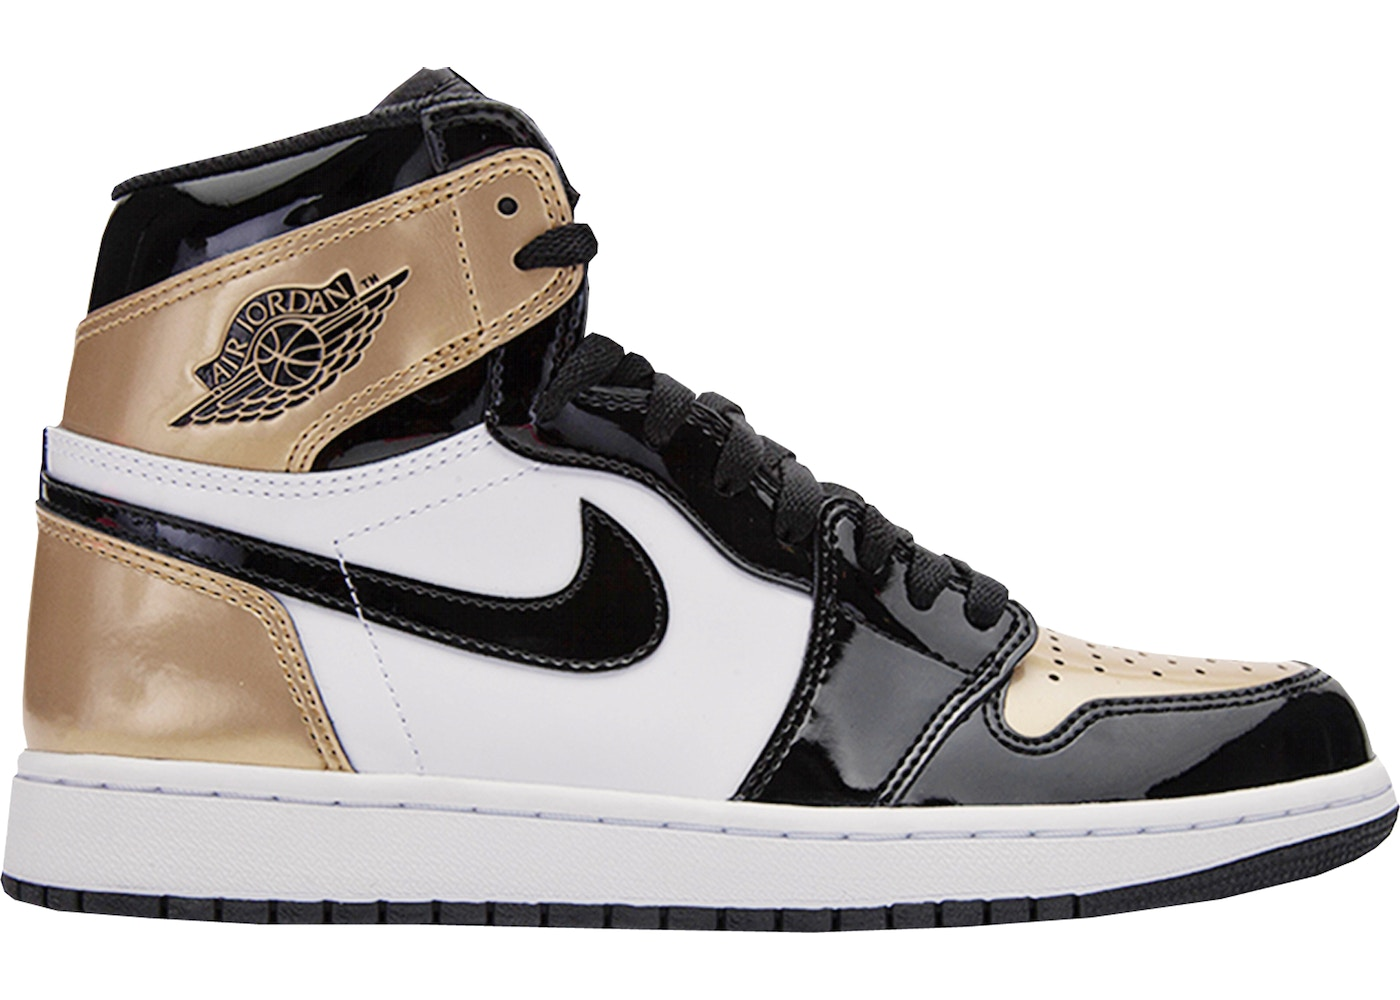 ce860ae4c392 Jordan 1 Retro High Gold Top 3 - 861428-001